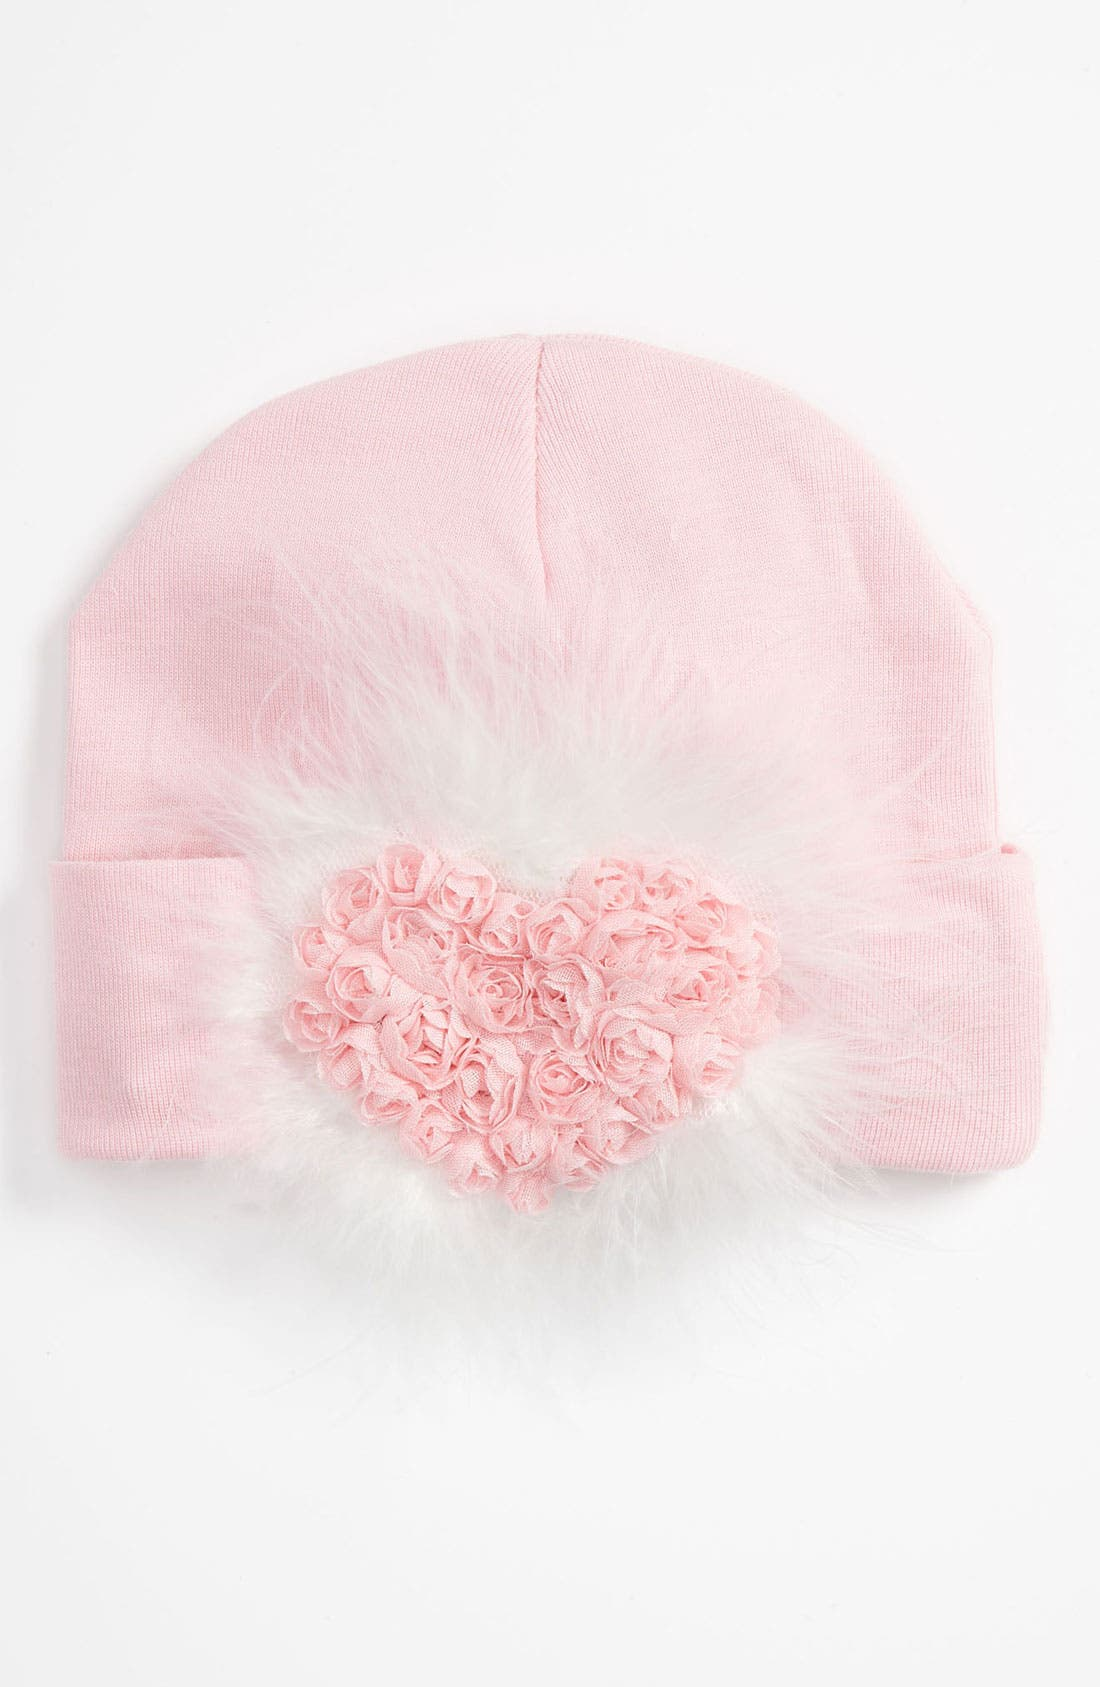 Alternate Image 1 Selected - PLH Bows & Laces Hat (Baby)